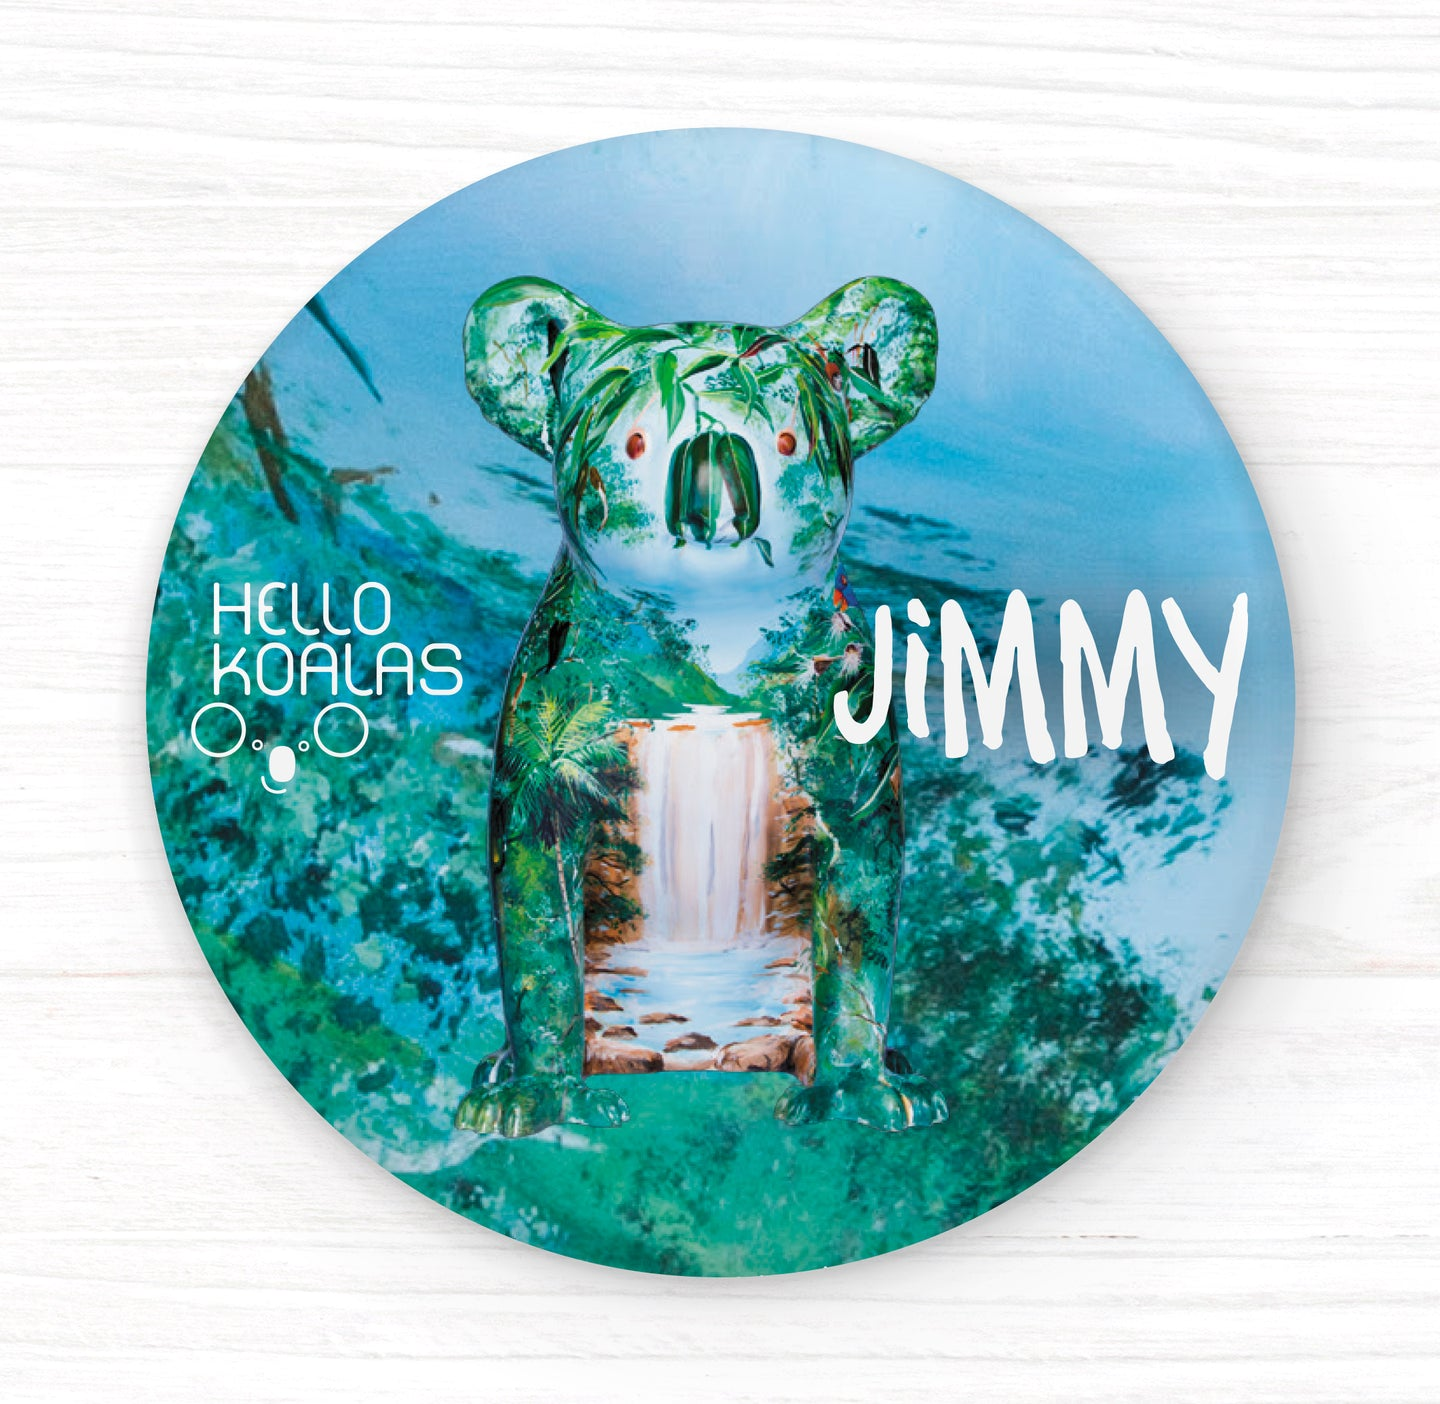 Hello Koalas Jimmy Badge